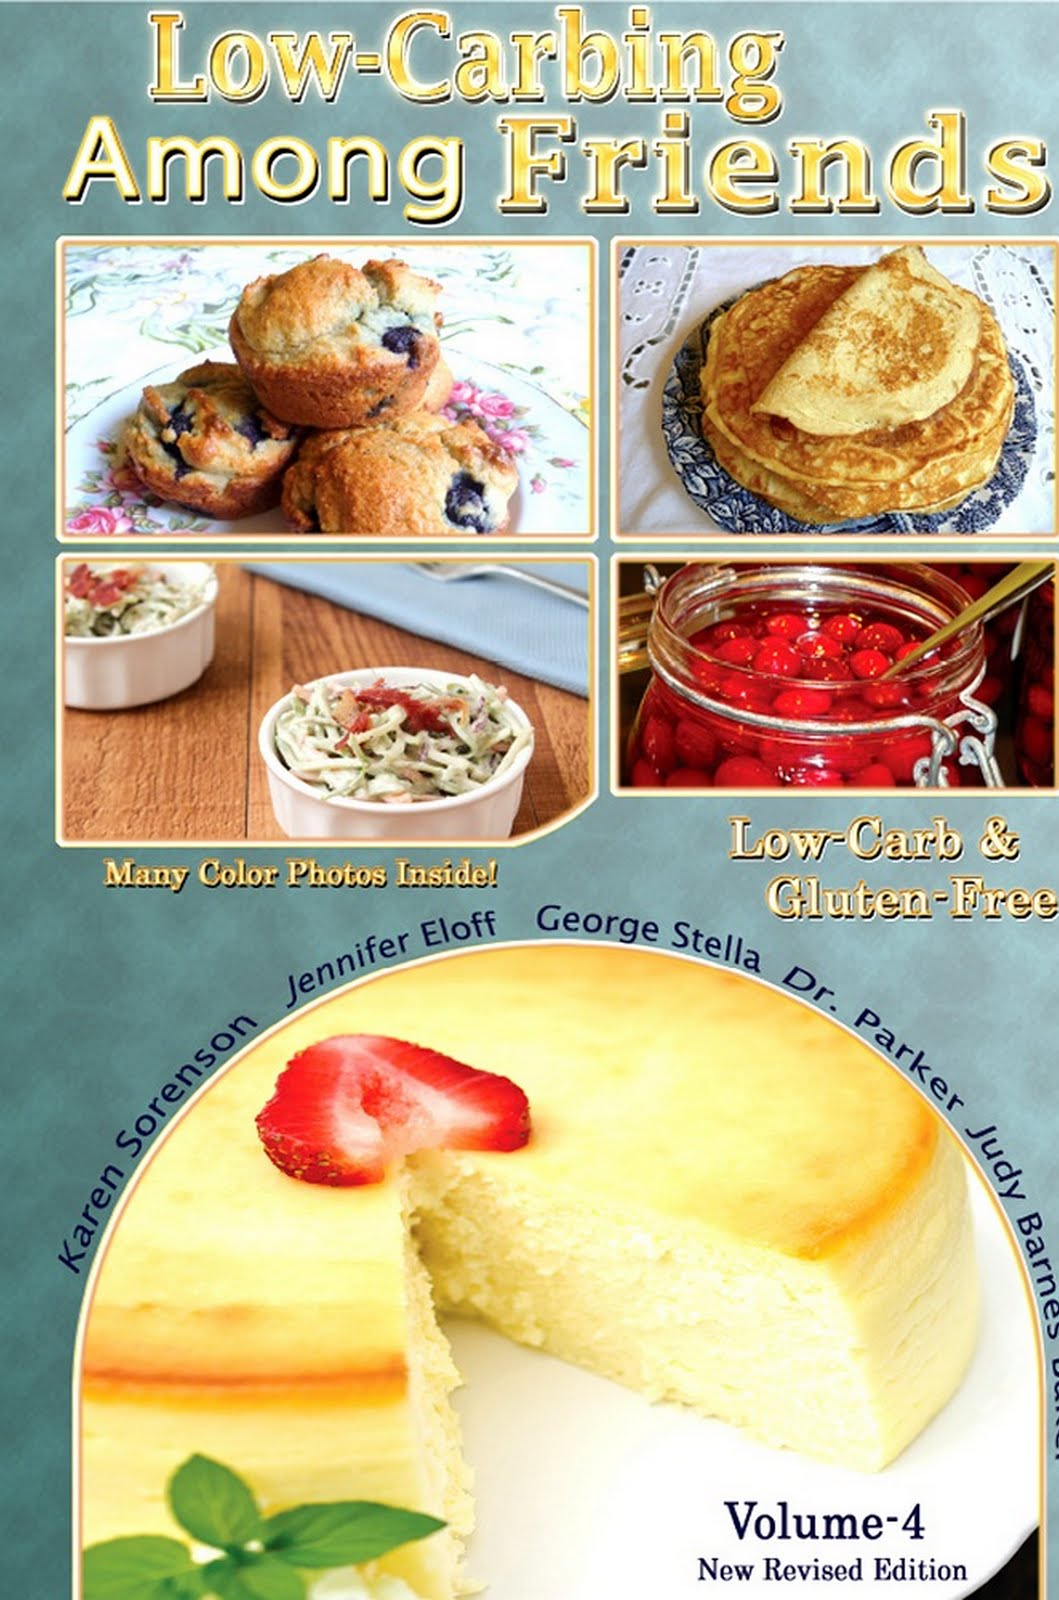 VOLUME-4 LOW-CARBING AMONG FRIENDS (Popular Authors/Recipes)